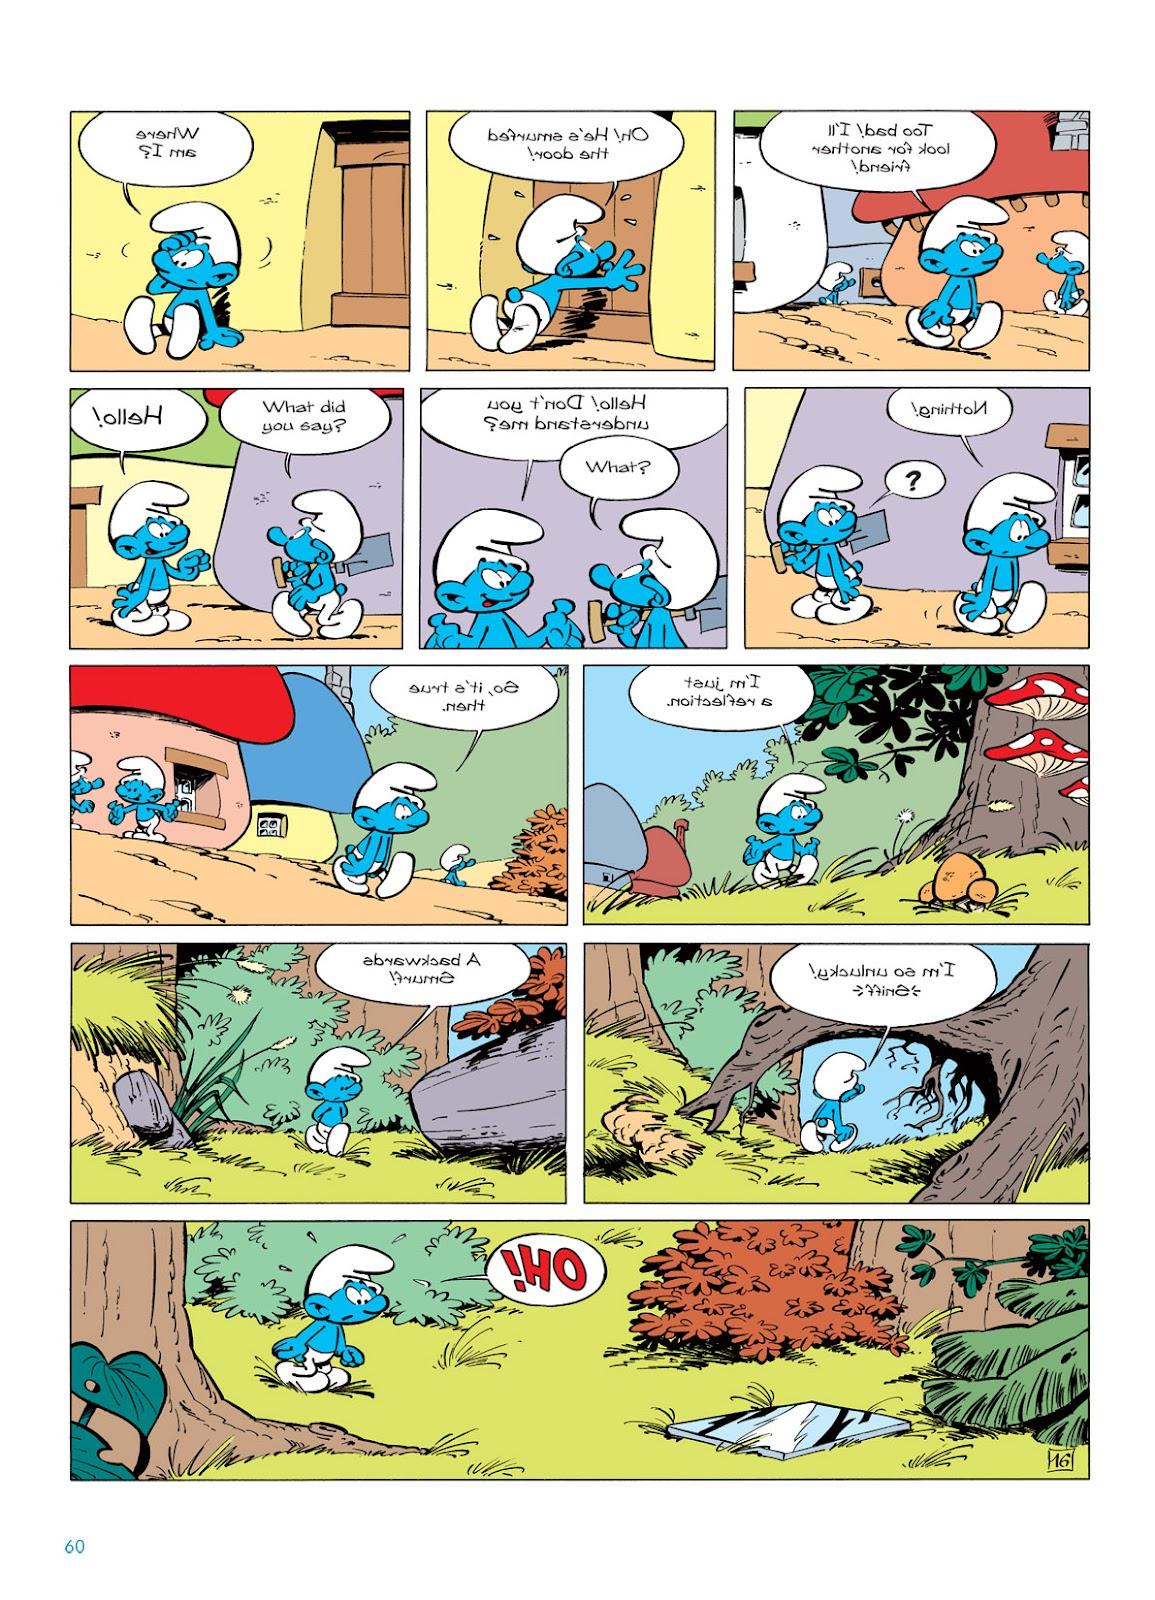 Read online The Smurfs comic -  Issue #5 - 60